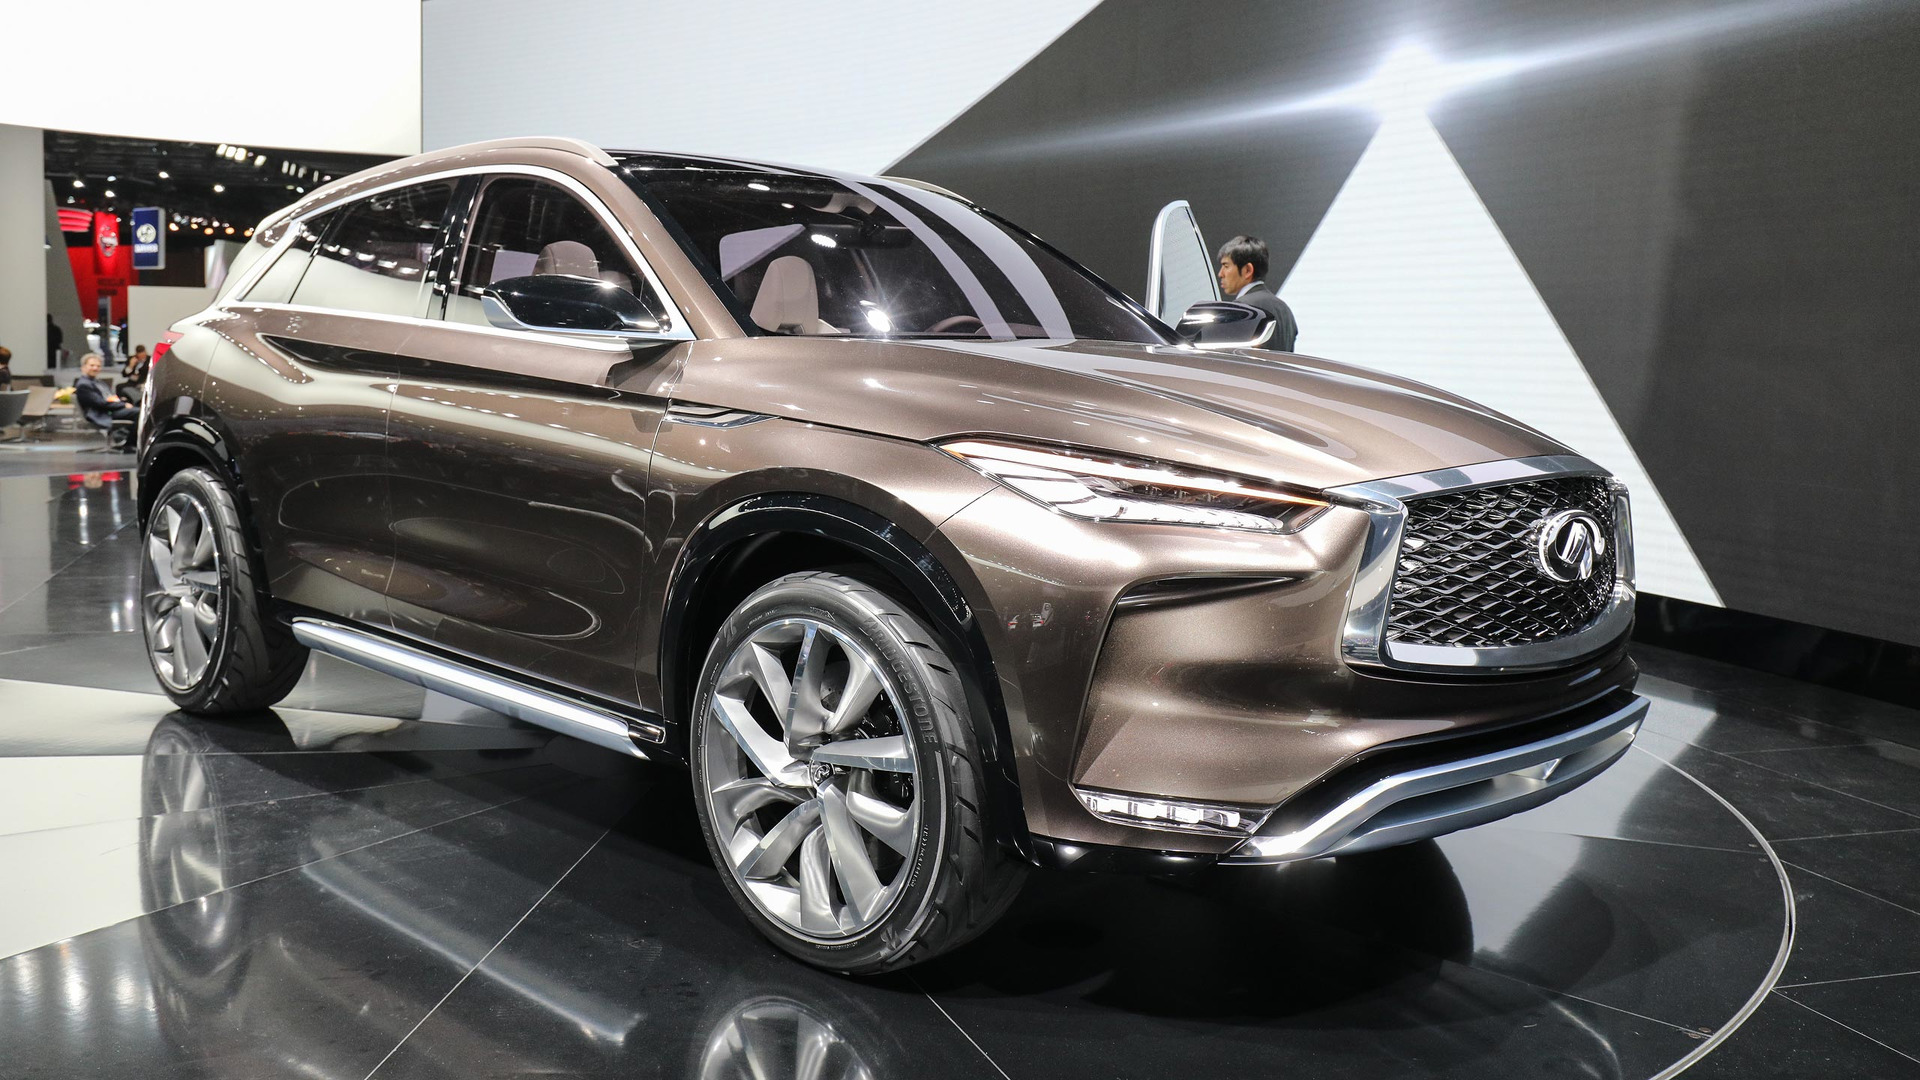 infiniti en canada gallery infinity features crossover photos exterior colours performance